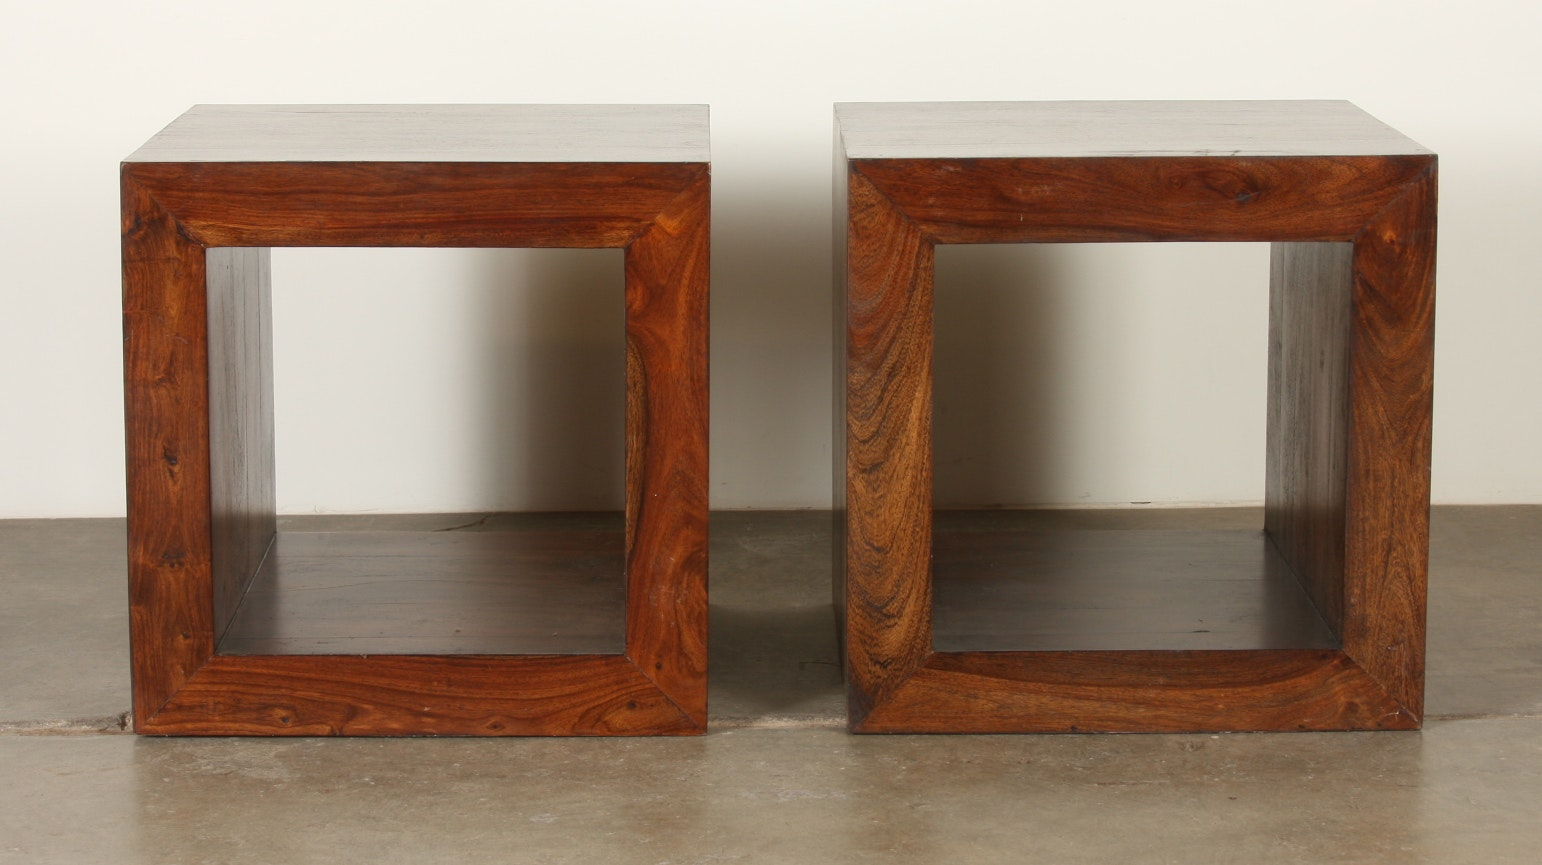 Charmant Contemporary Wood Hollow Cube End Tables ...